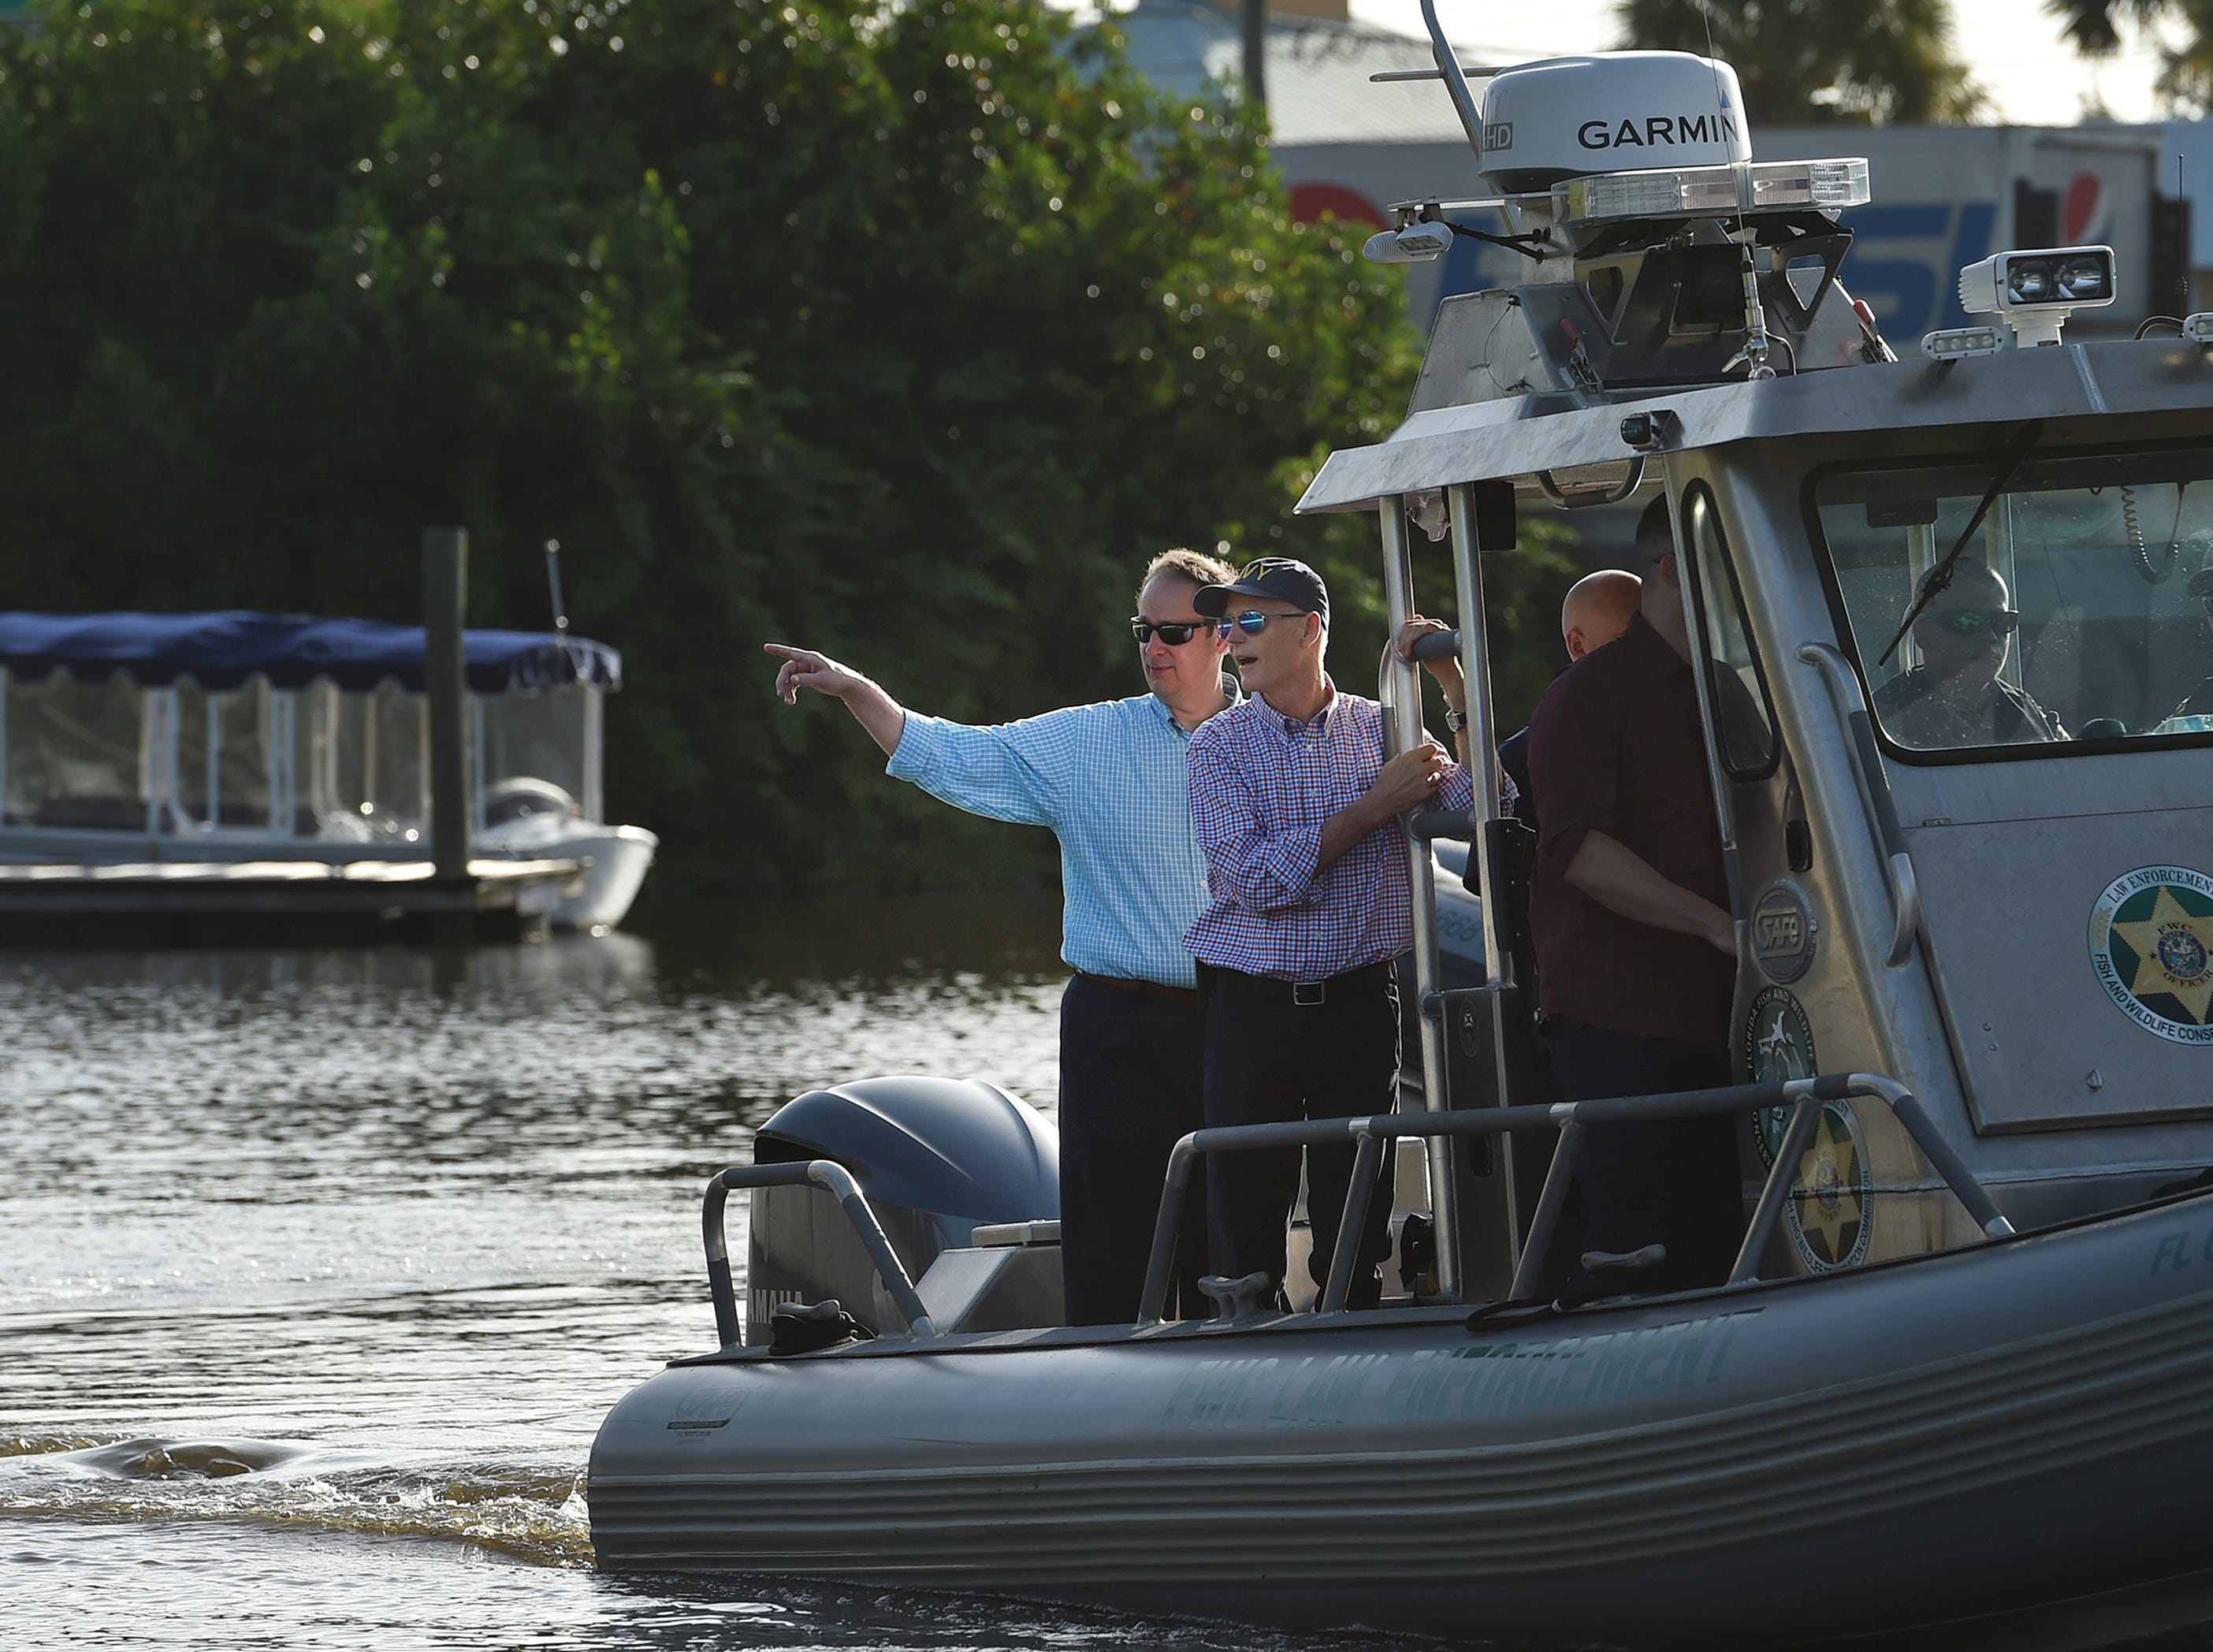 Senator Joe Negron (from left) and Governor Rick Scott tour the algae affected areas of the St. Lucie River from a Florida Fish and Wildlife Conservation boat on Friday, August 10, 2018, in Stuart.